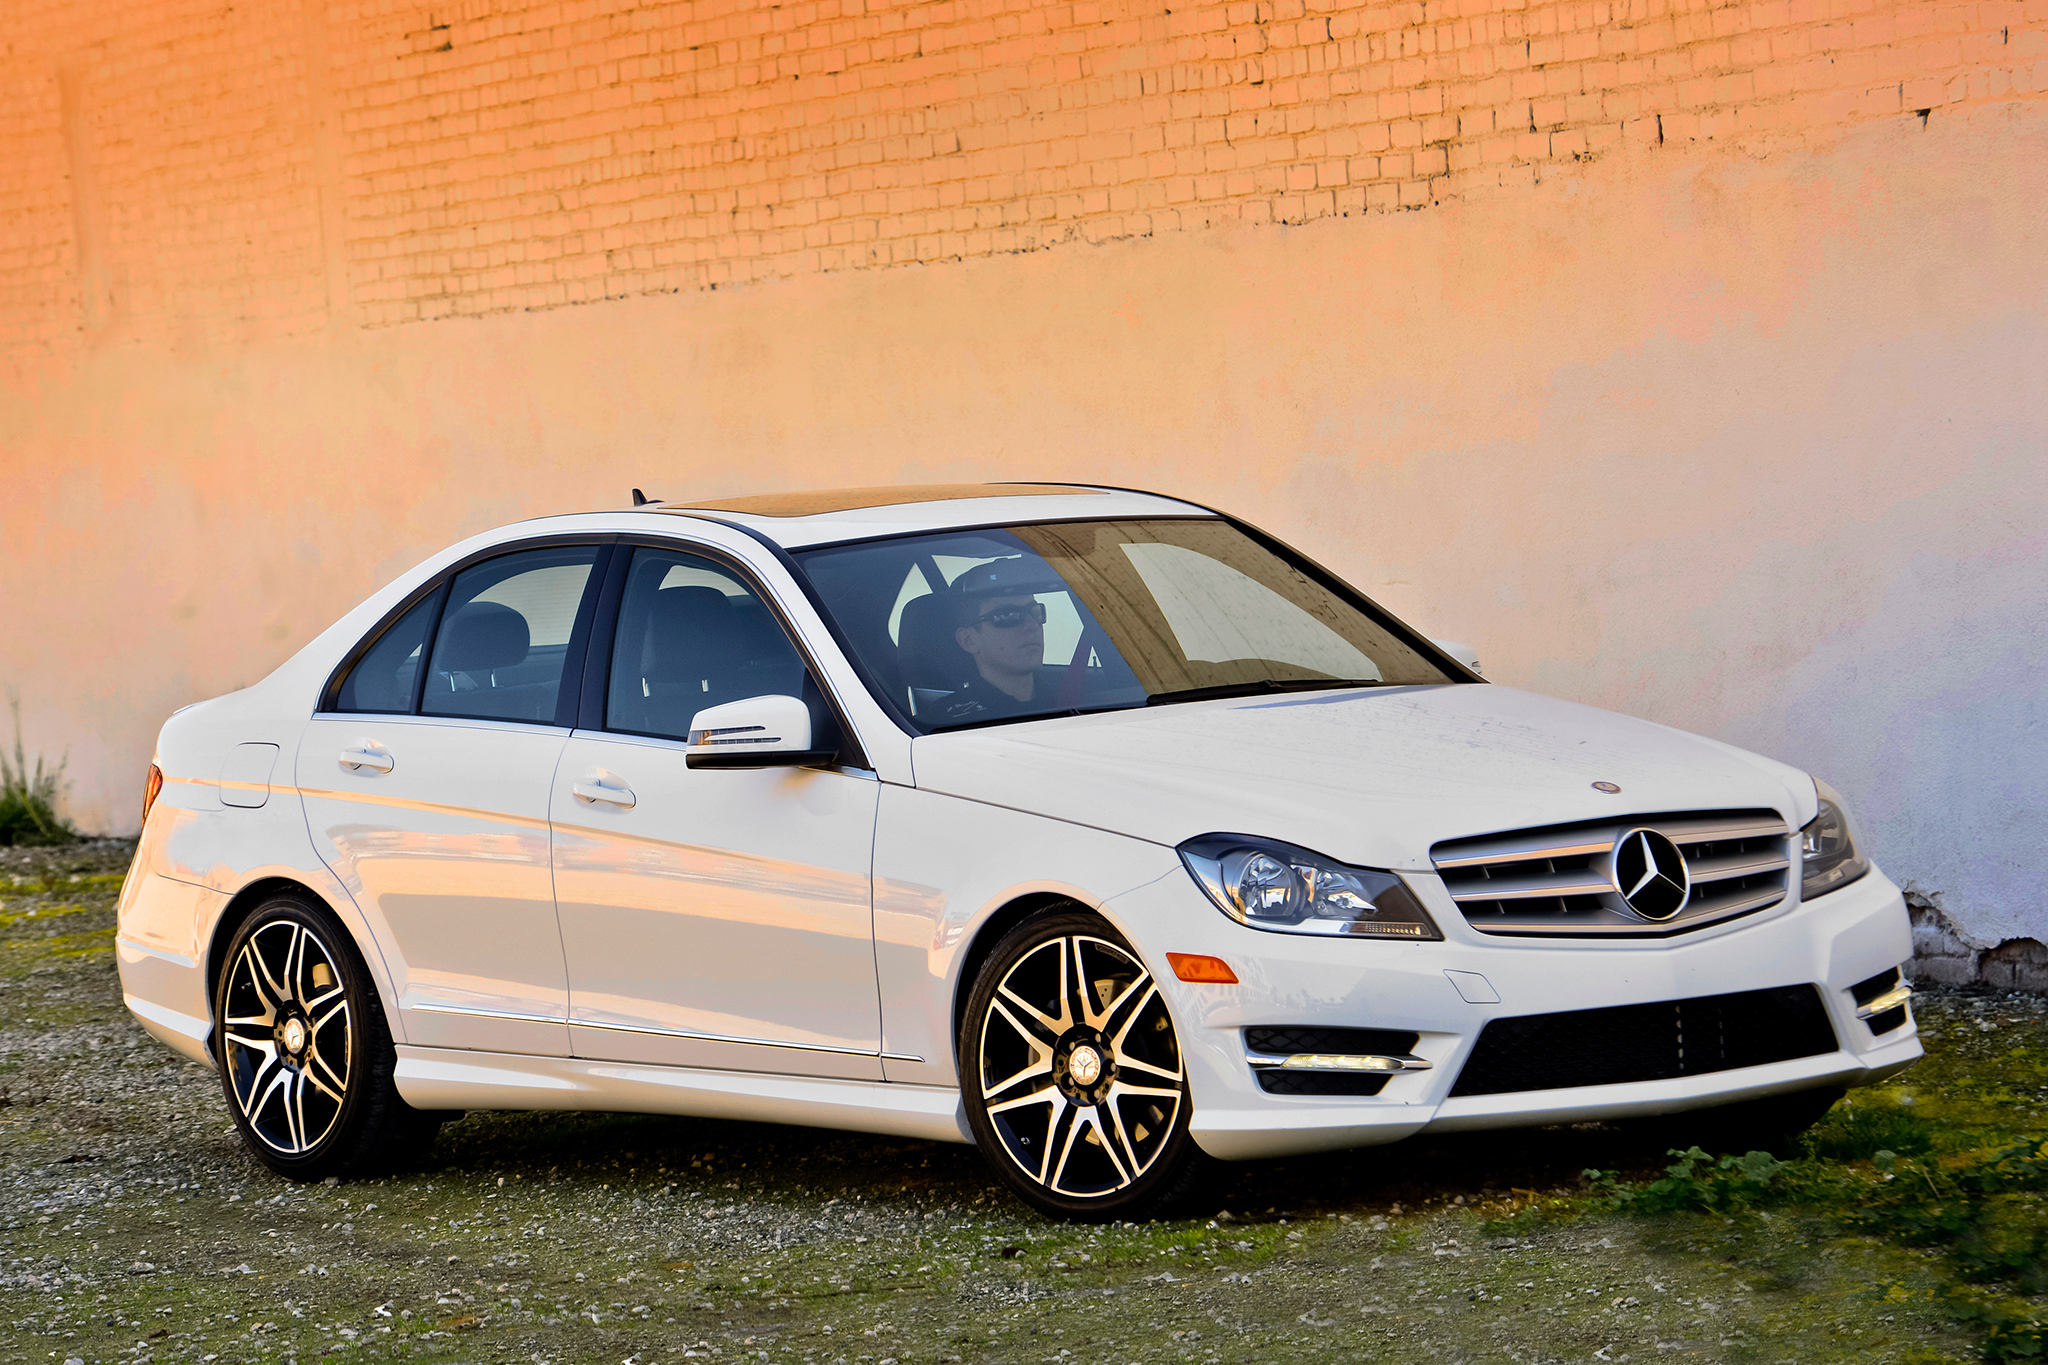 epa revises mpg estimates for 2013/2014 mercedes c-class 4matic